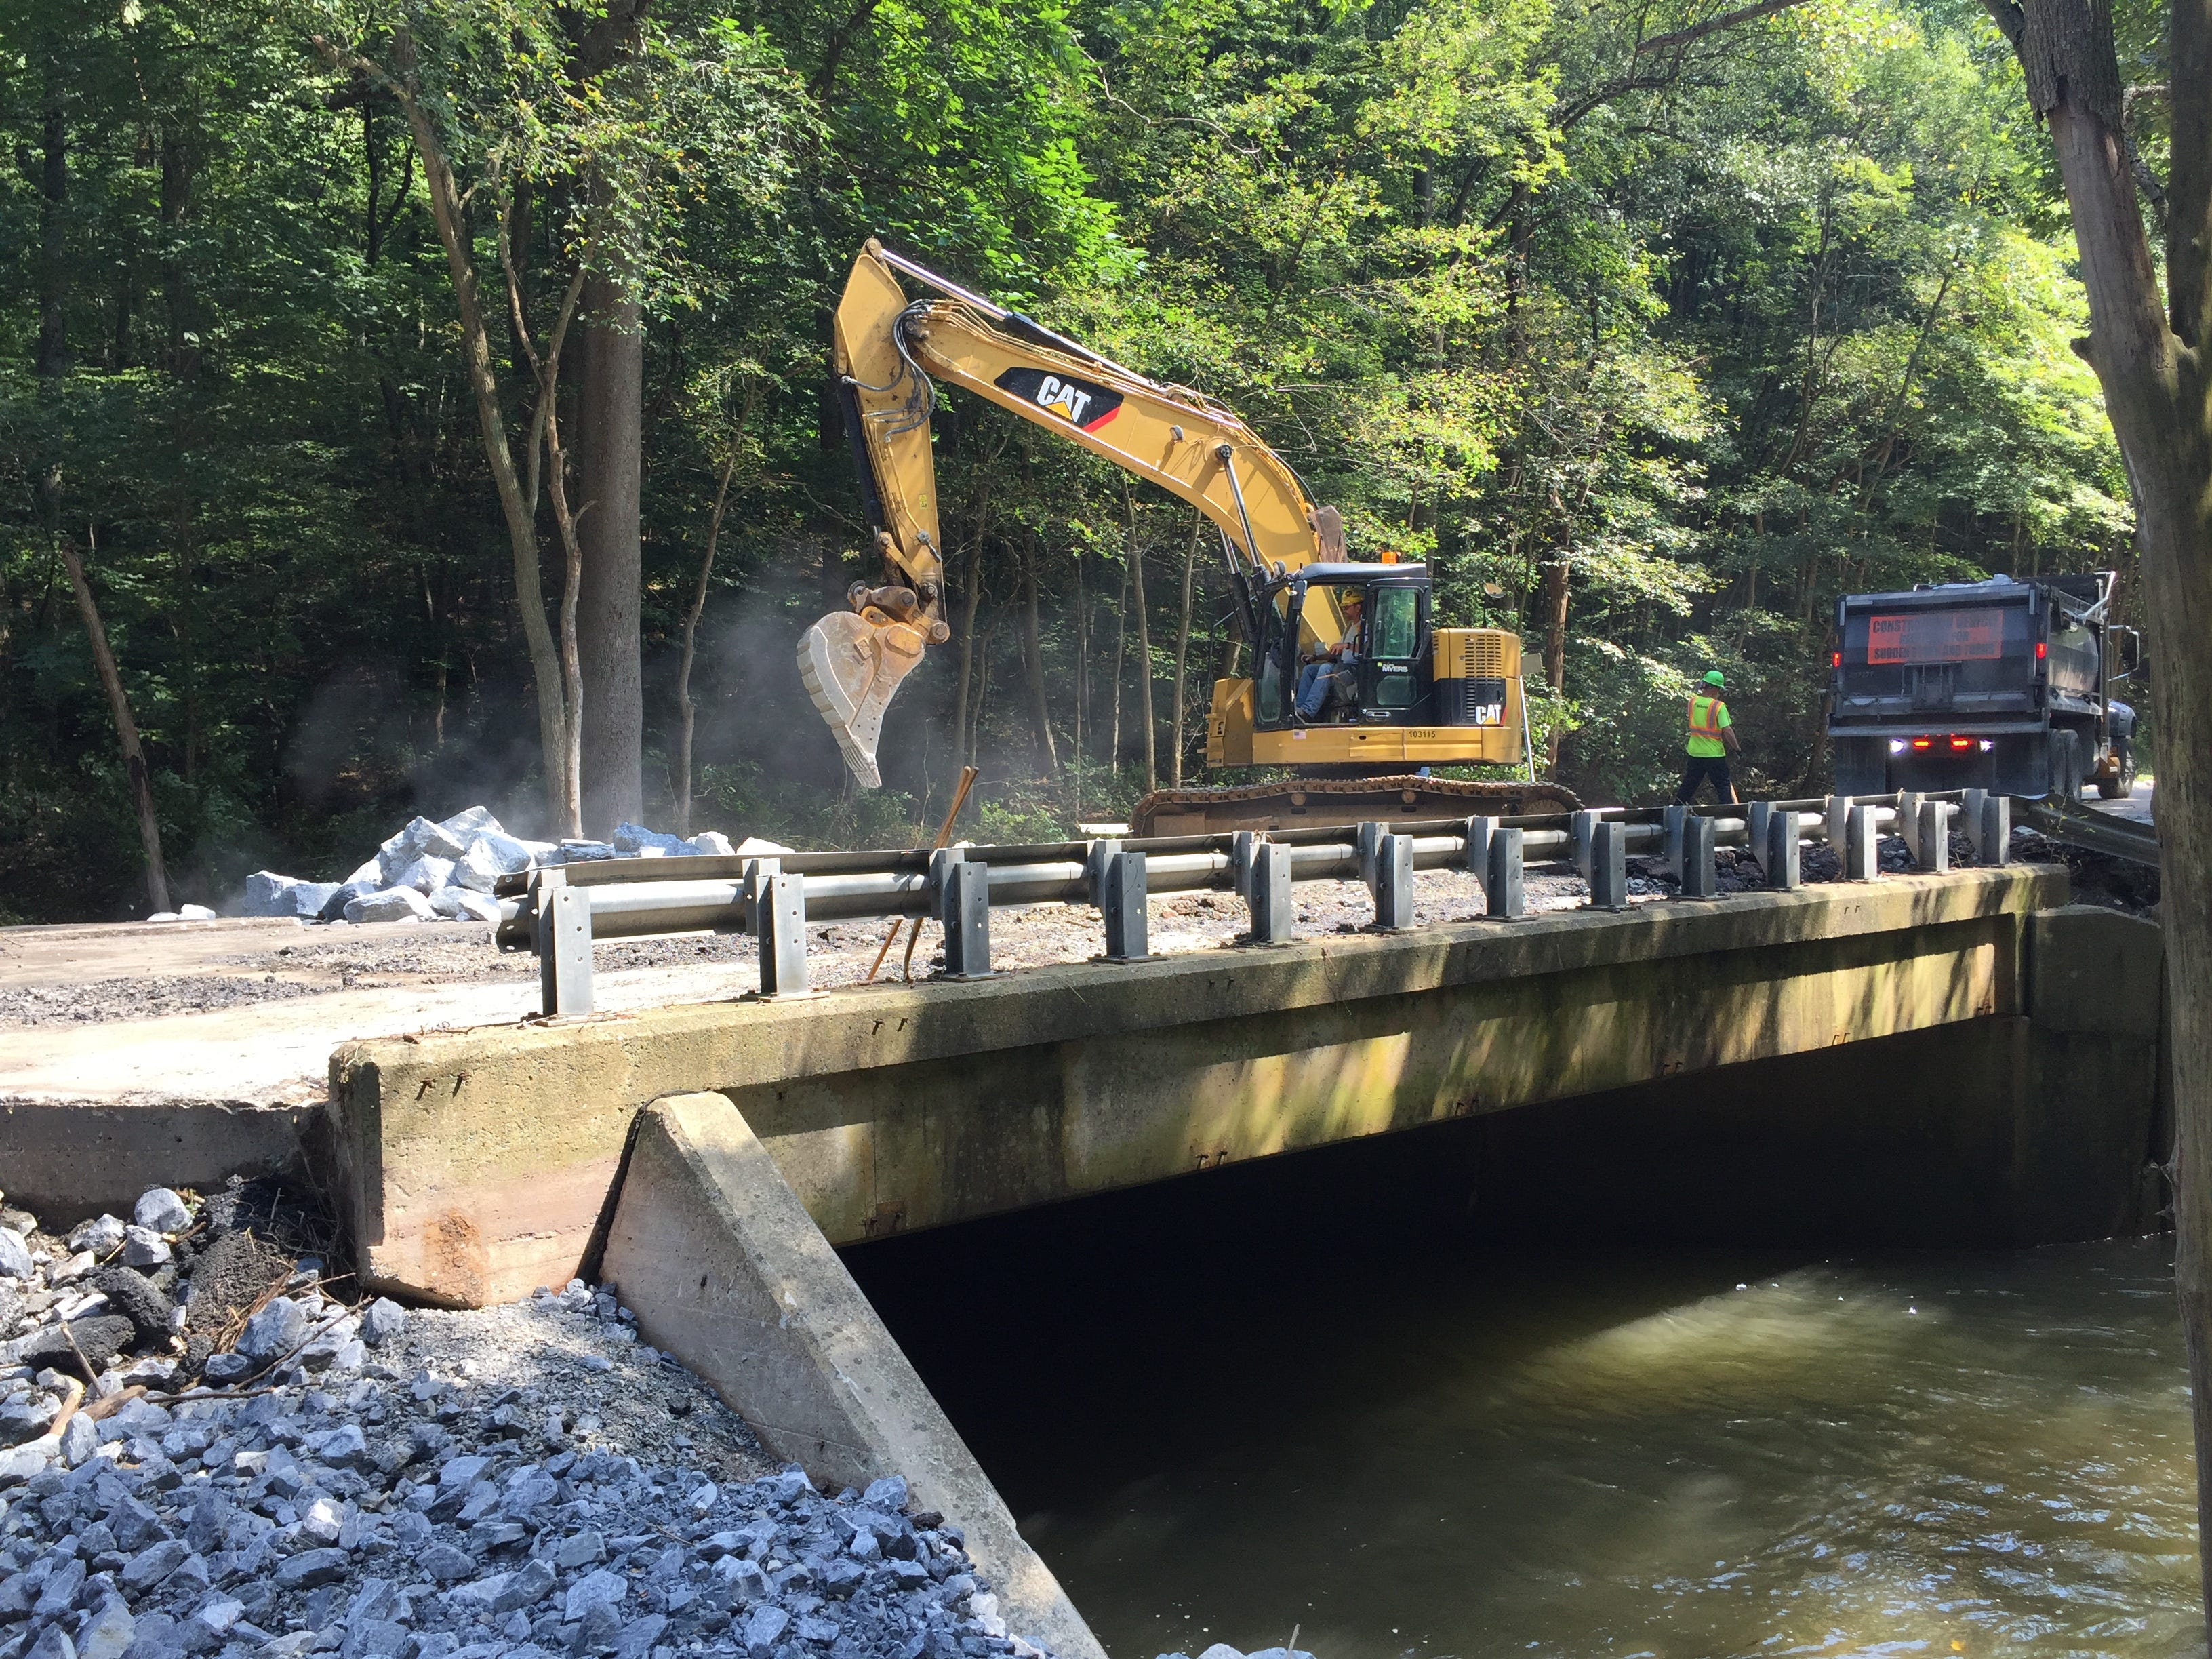 The bridge over Hammer Creek on Route 322 in Elizabeth Township, Lancaster County Sept. 4, 2018. The bridge was washed out by floodwaters Aug. 31 causing Route 322 to be closed in Lebanon County at Boyd Street in Cornwall Borough. The roadway is expected to be opened by Sept. 14.